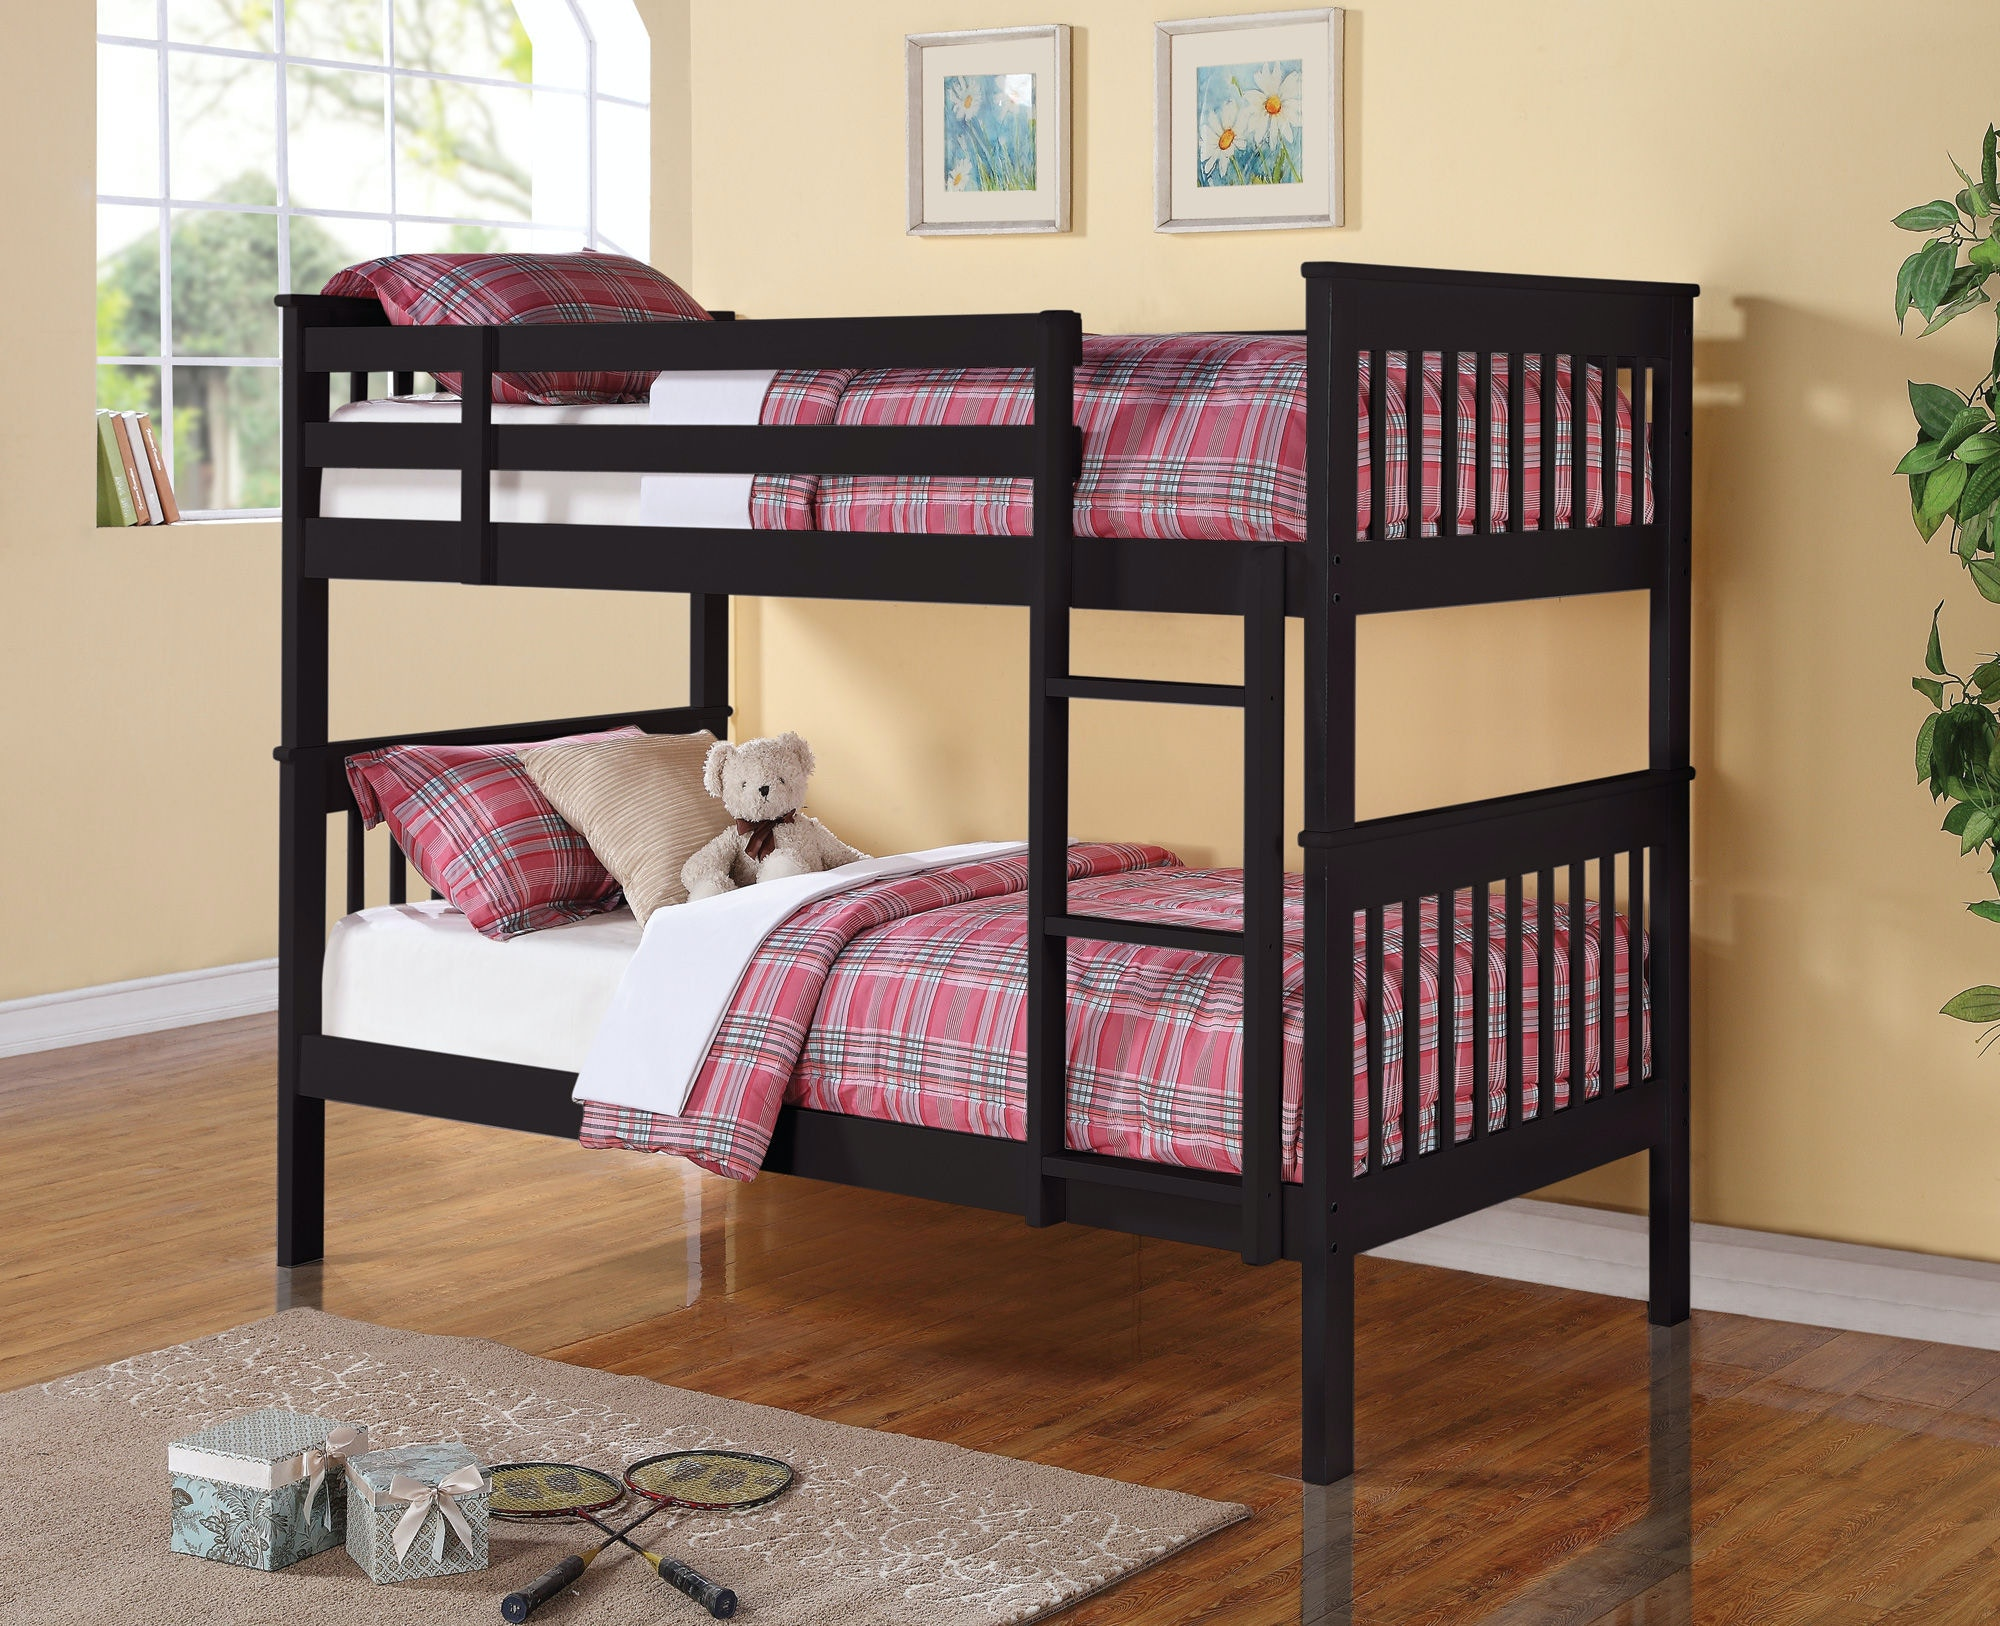 coaster youth bedroom bunk bed 460234 home decor